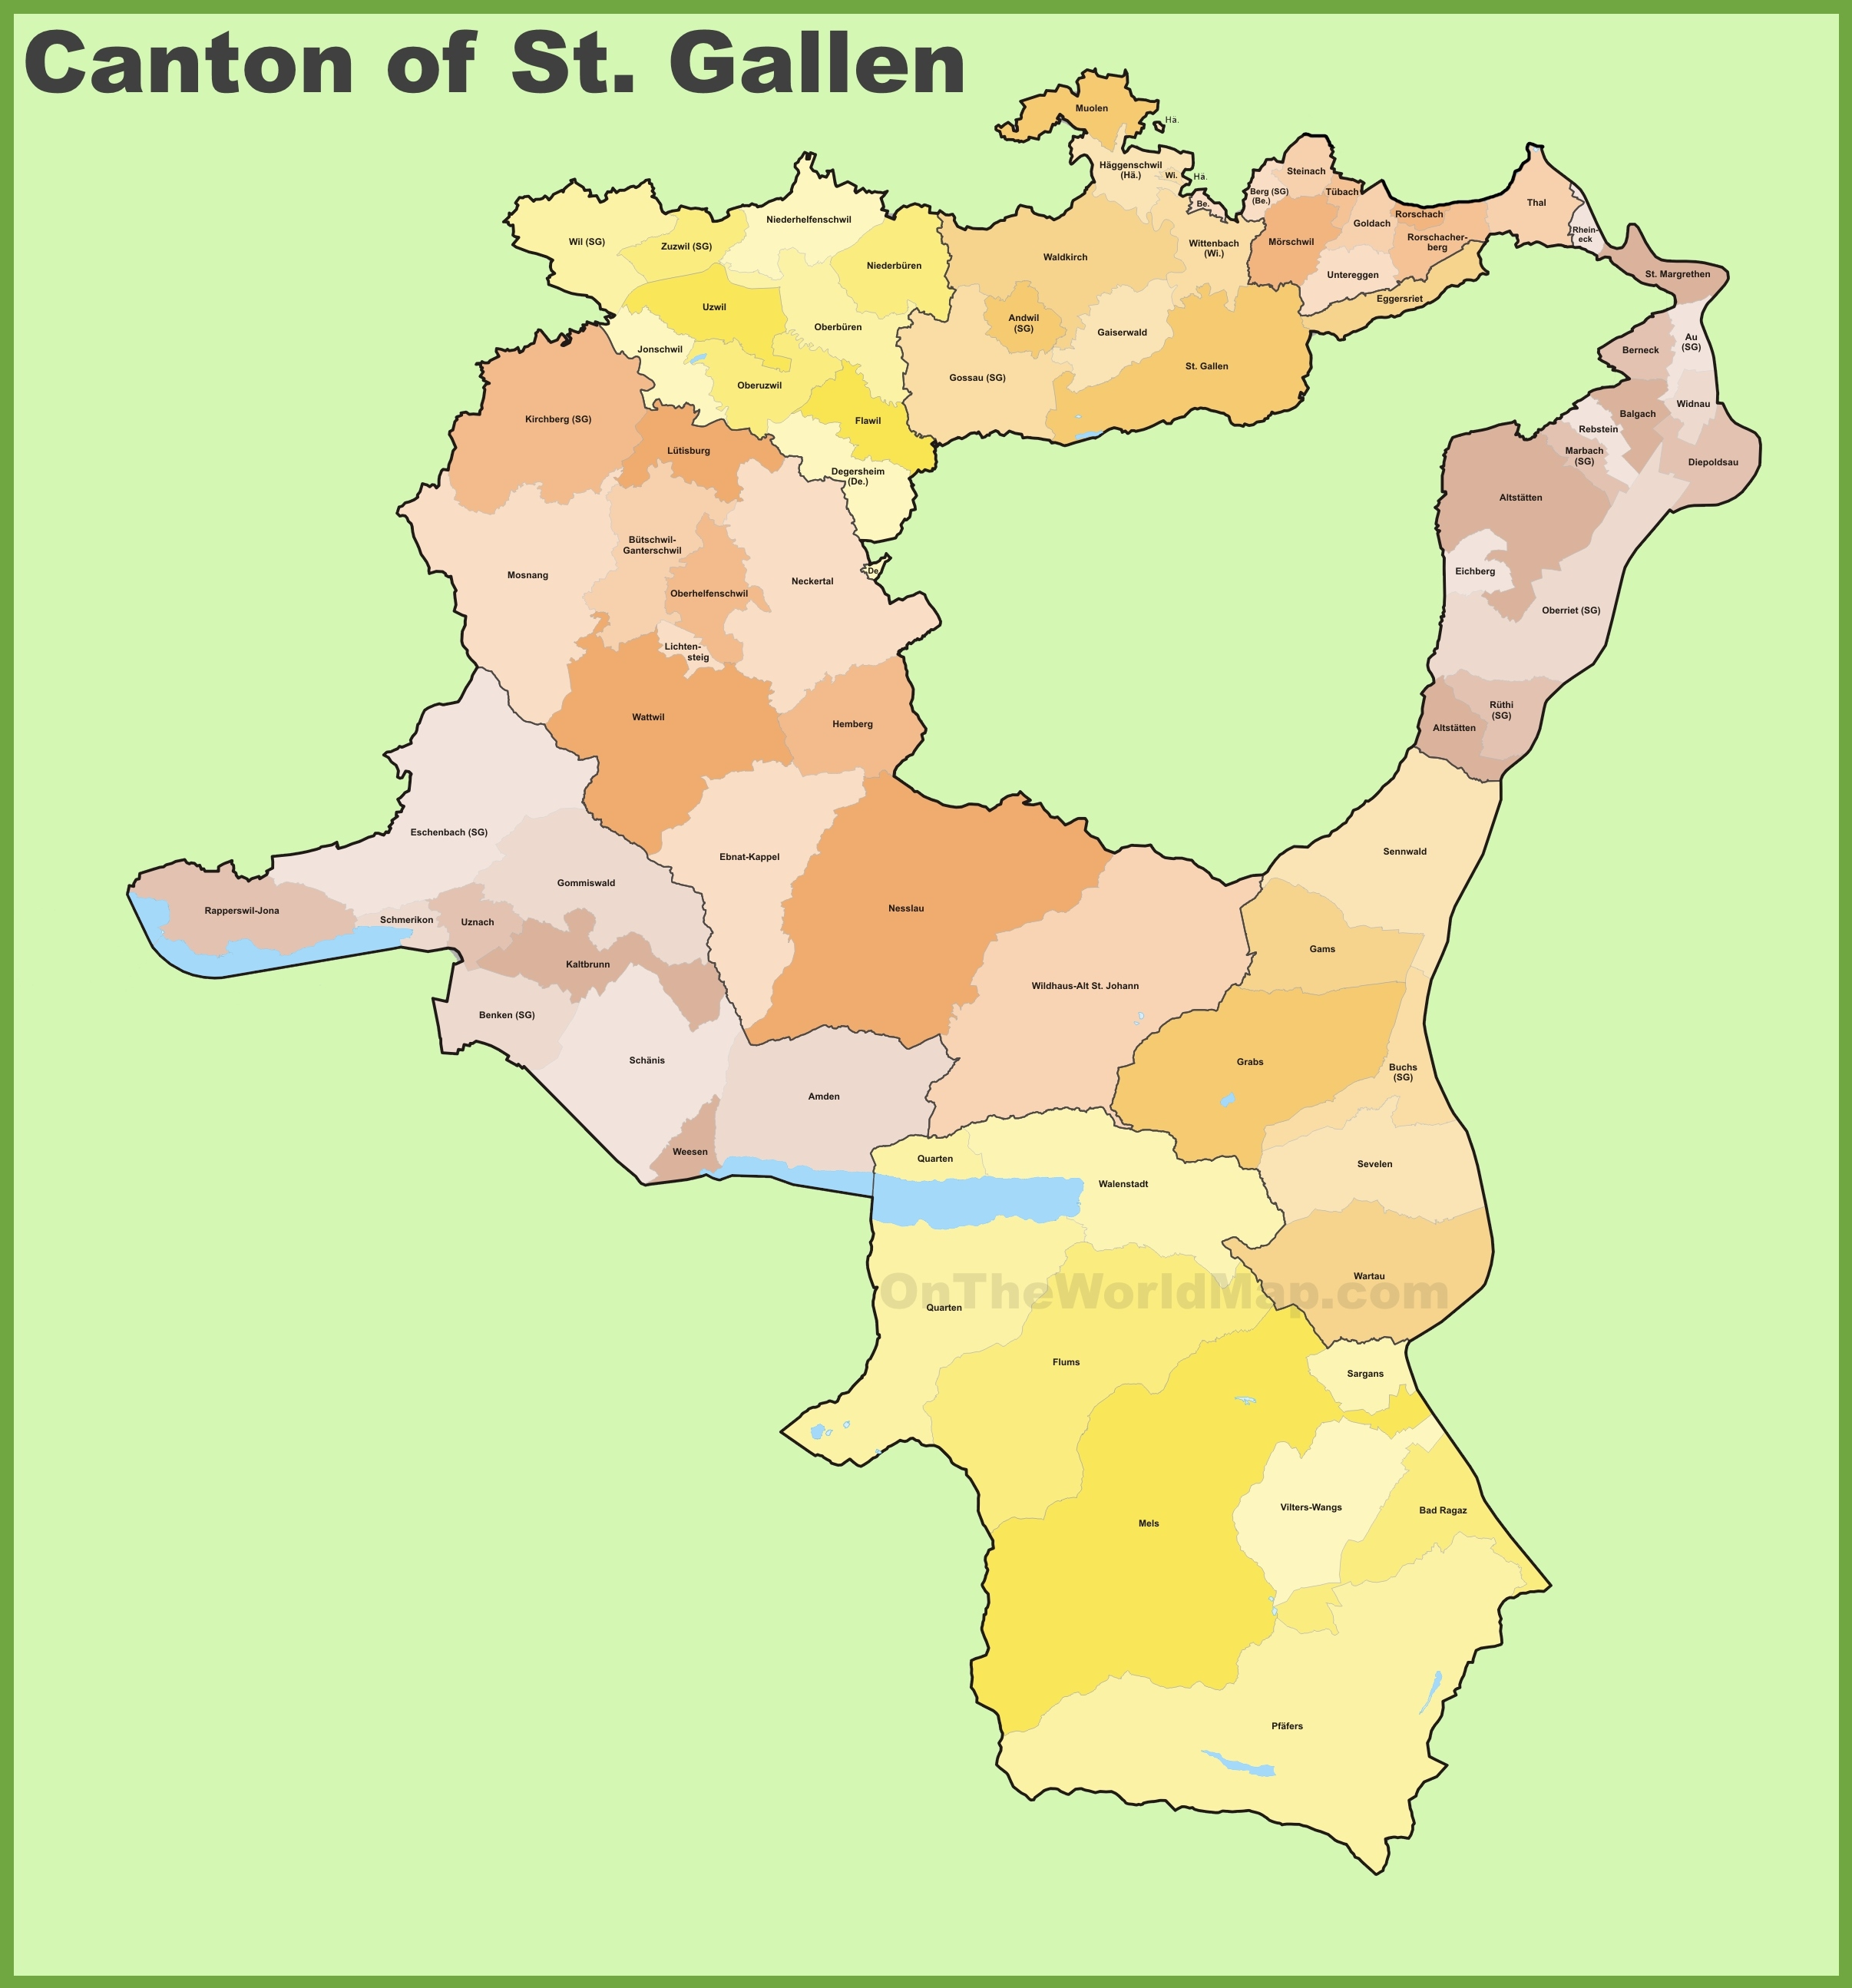 Canton of St Gallen municipality map